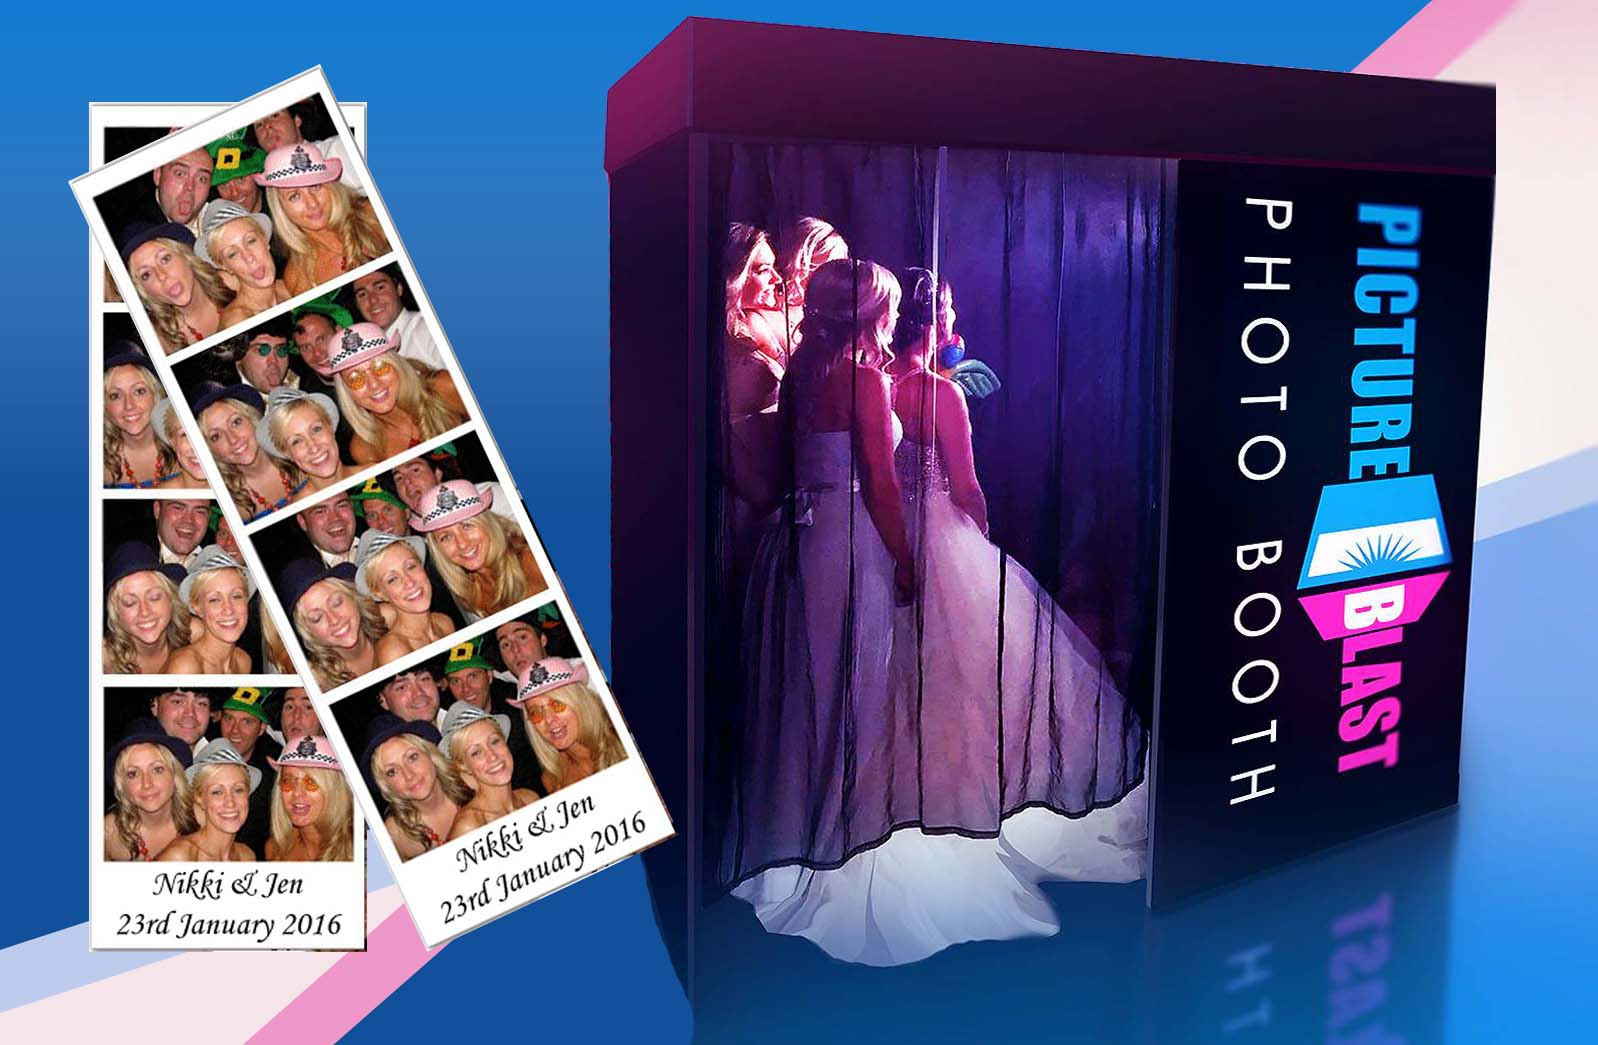 photo booth hire Mablethorpe and Sutton